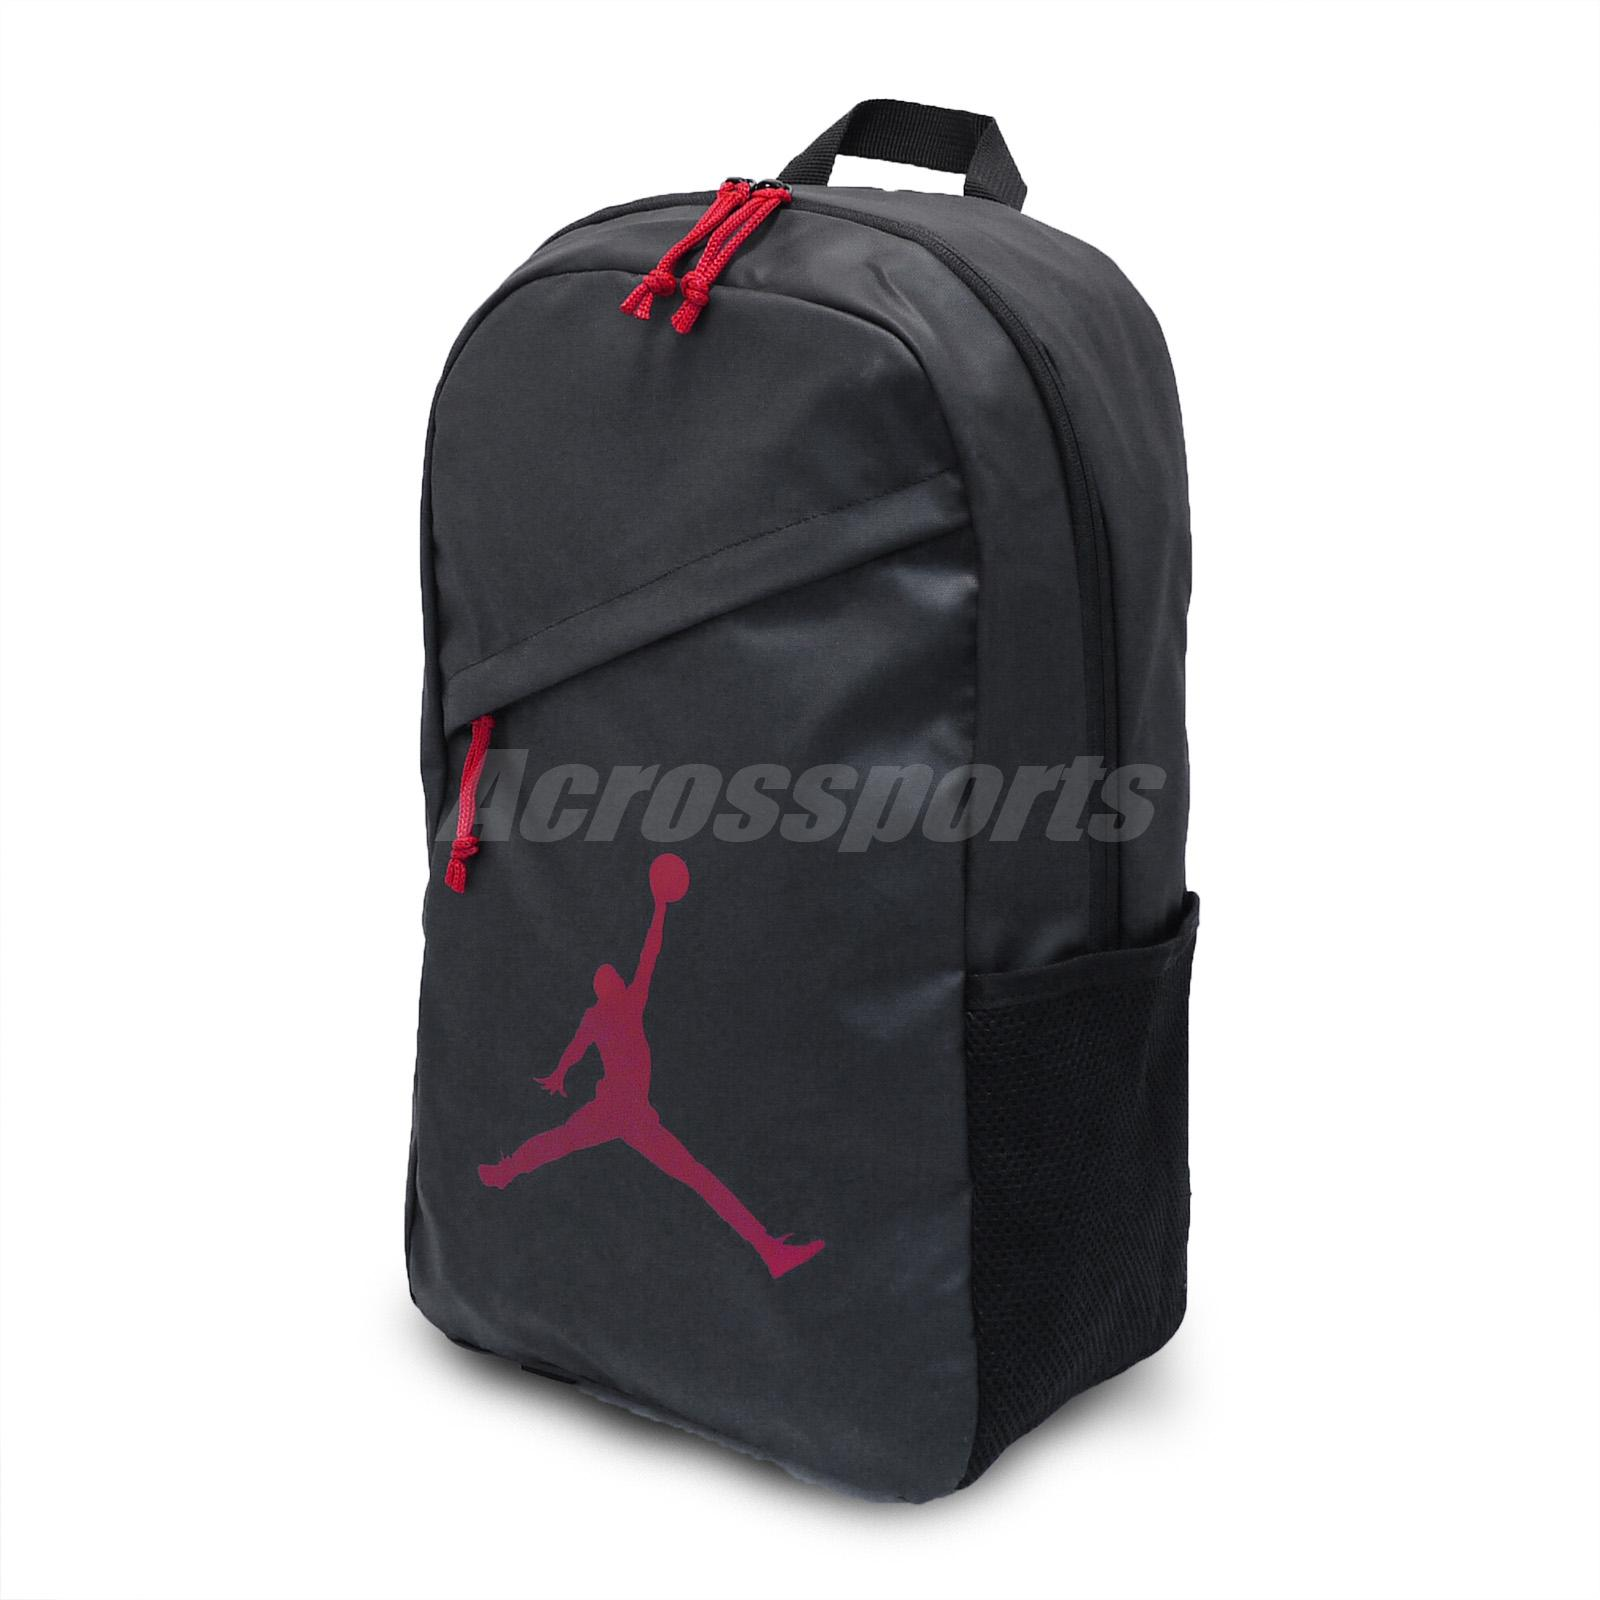 Details about Nike Jordan Flight Backpack Black Red Jumpman Gym School Book  Bag 9A1910-KR5 6603018682ef9